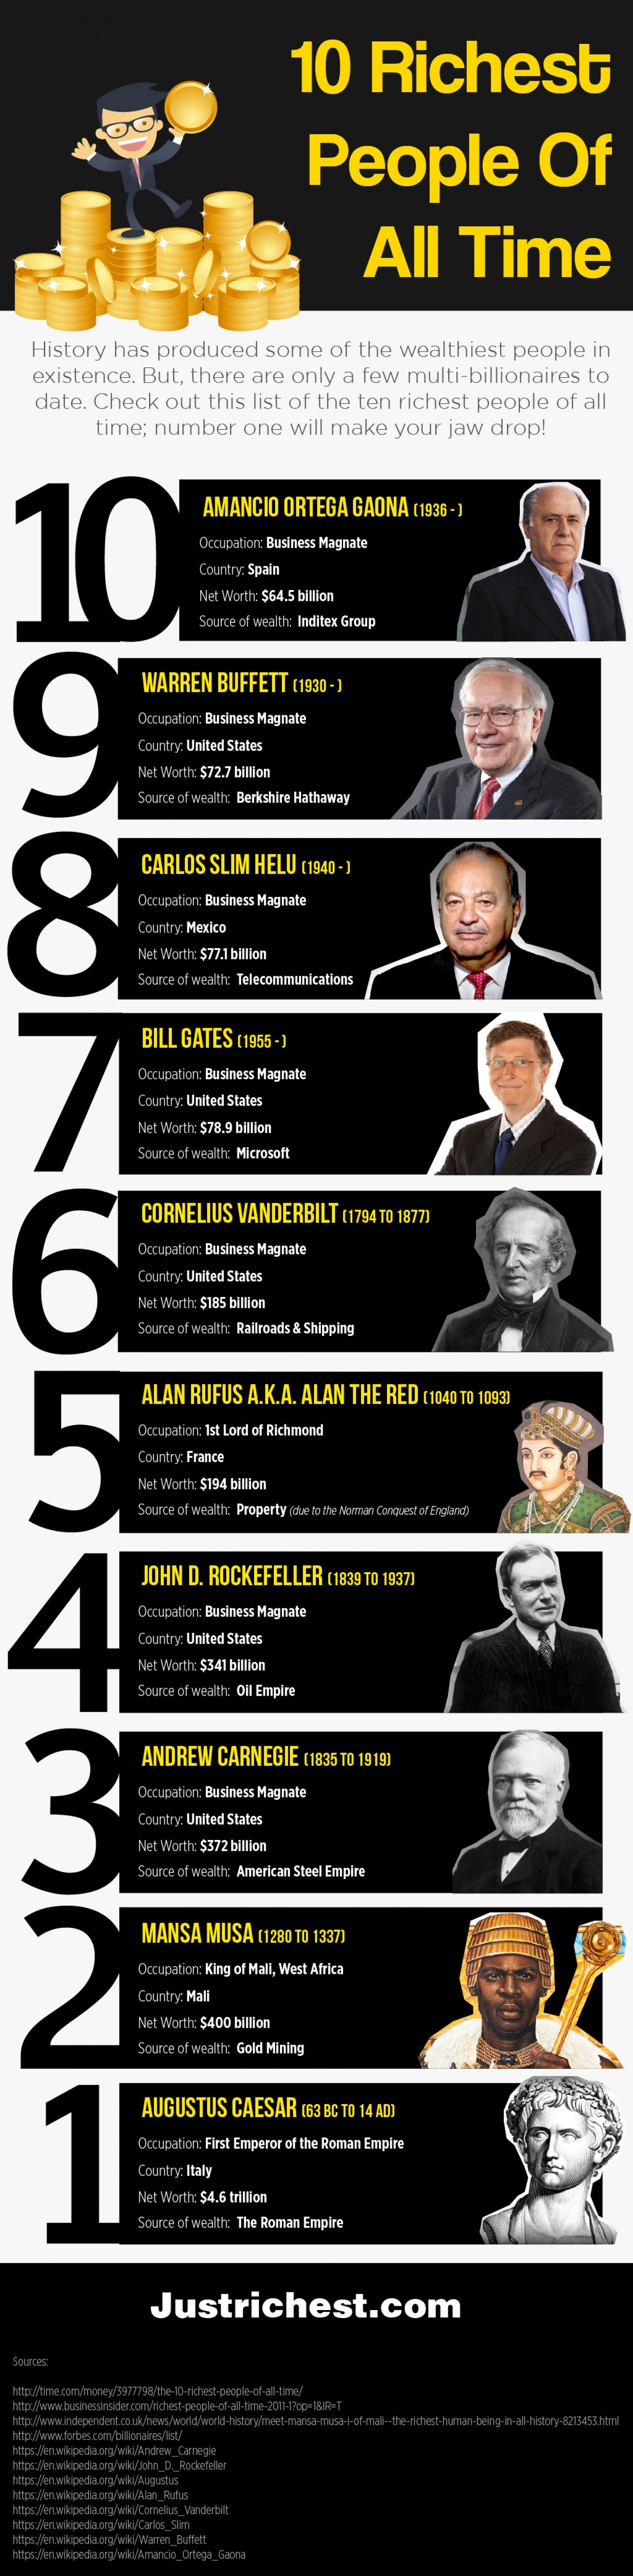 10 Richest People of All Time Infographic